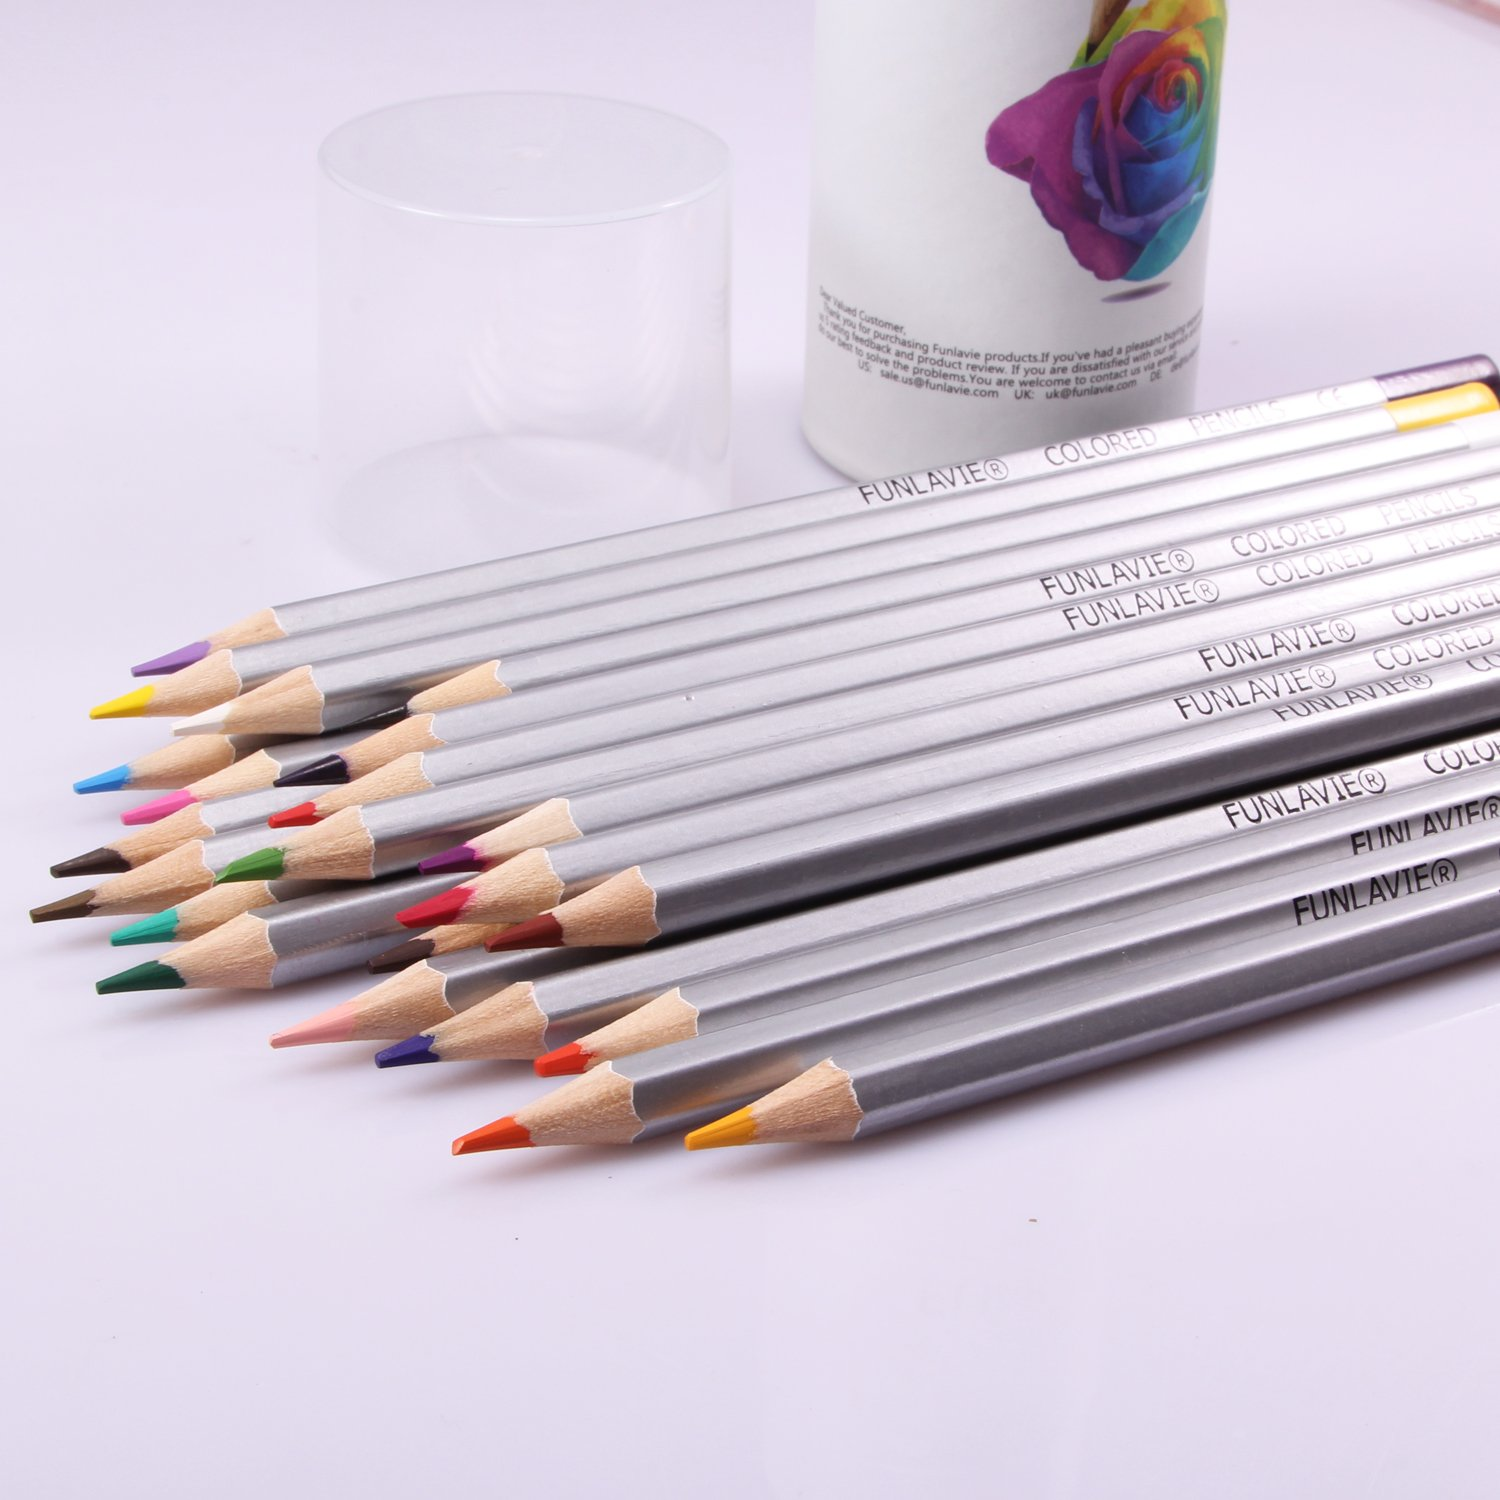 Art colored pencils - Amazon Com Colored Pencils 24 Coloring Pencils Premium Art Drawing Pencil For Adults Coloring Book By Funlavie